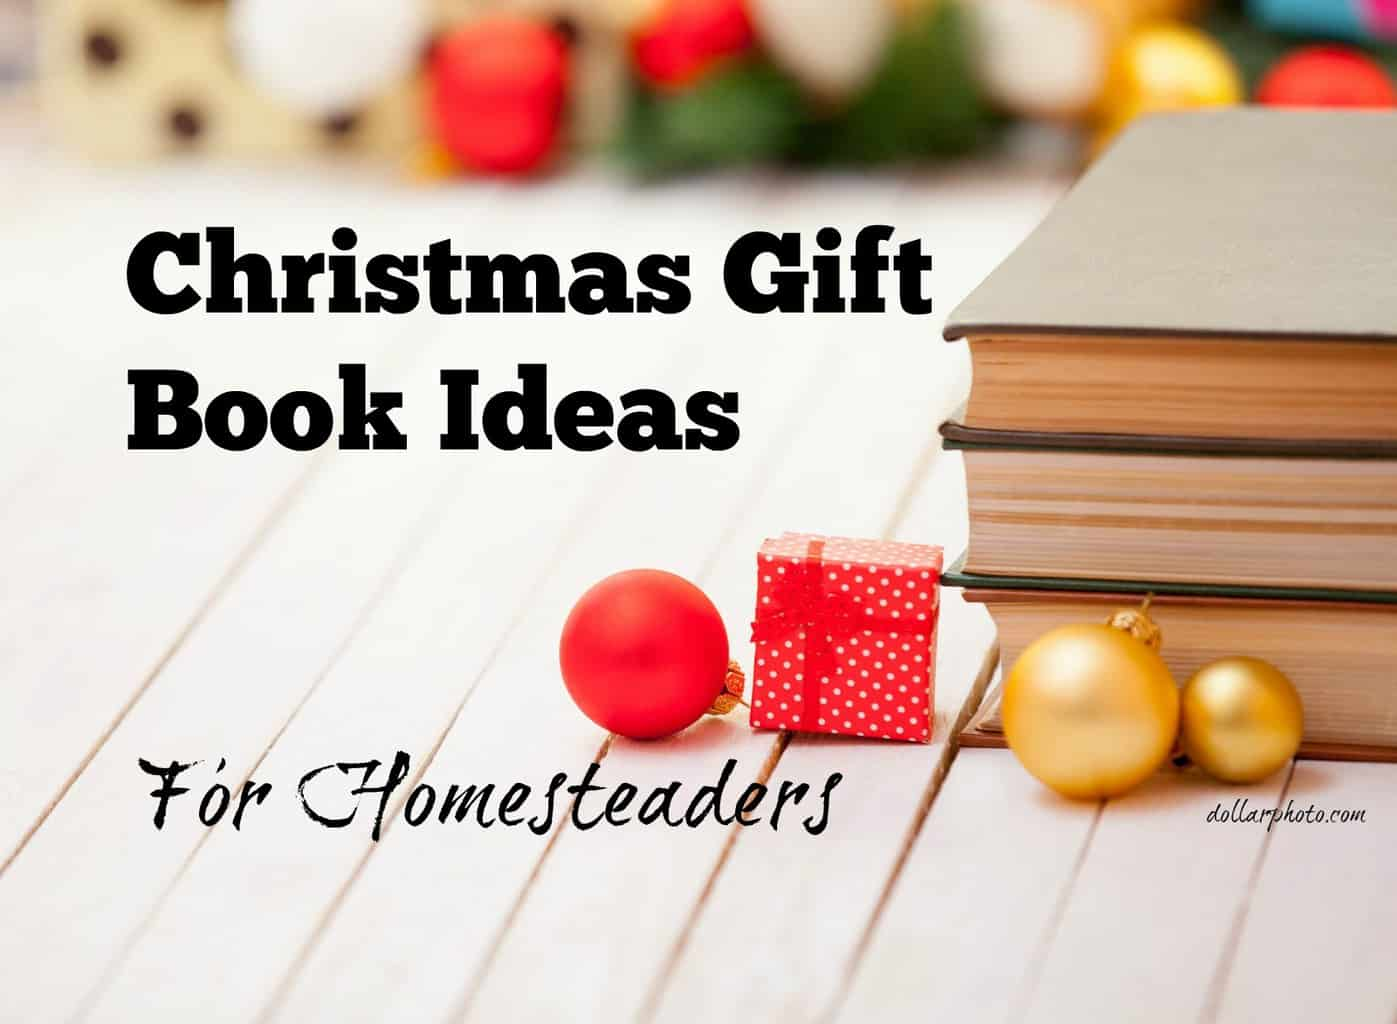 Christmas Gift Book Ideas for Homesteaders